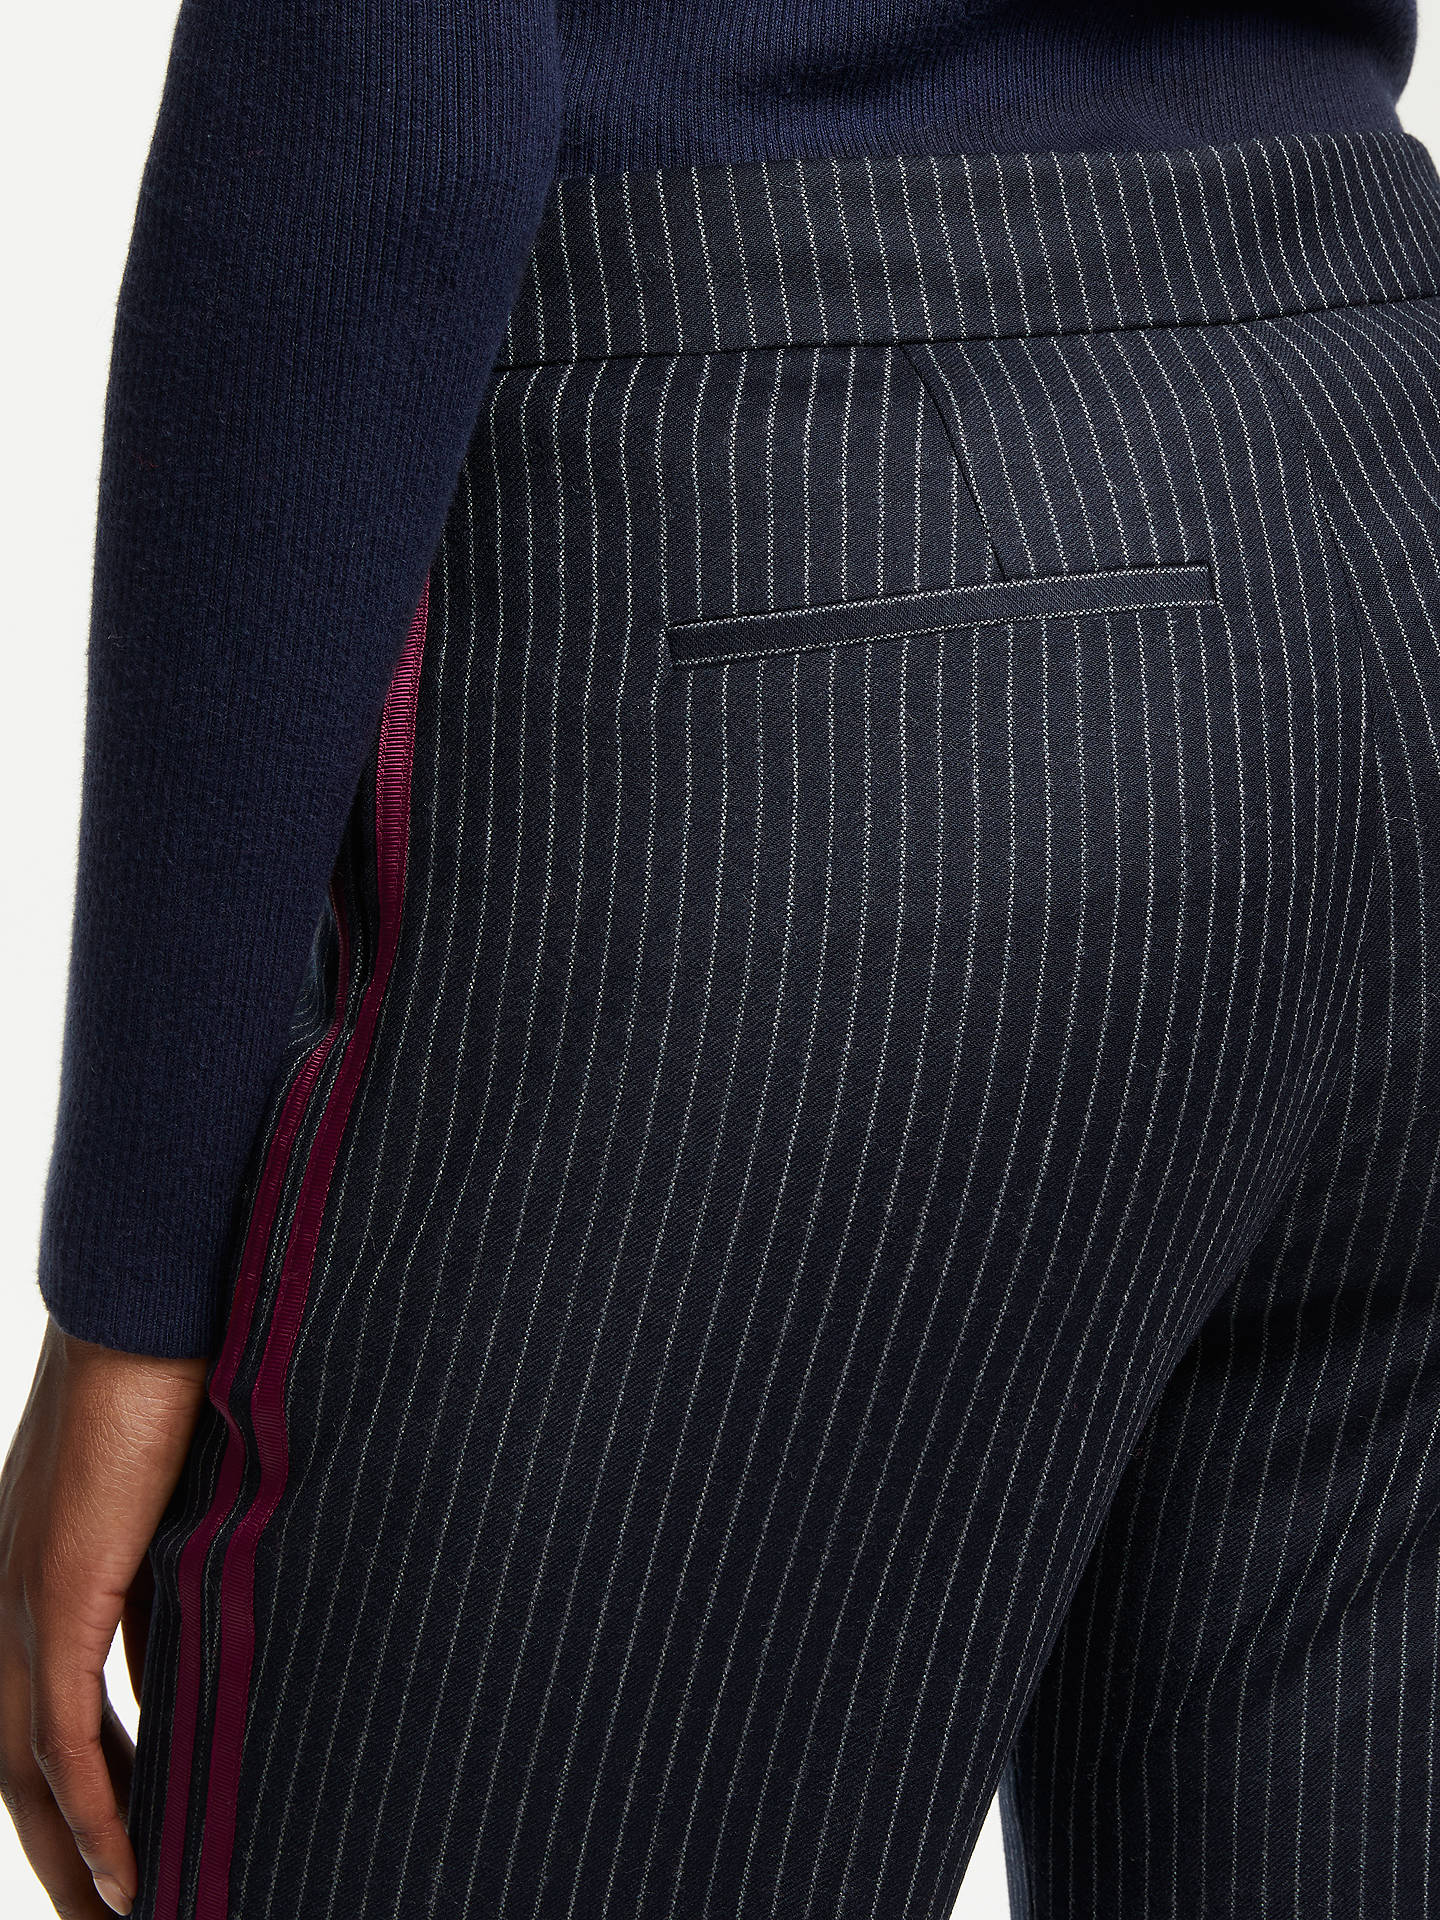 BuyBoden Cresswell Pinstripe Trousers, Blue, 16 Online at johnlewis.com